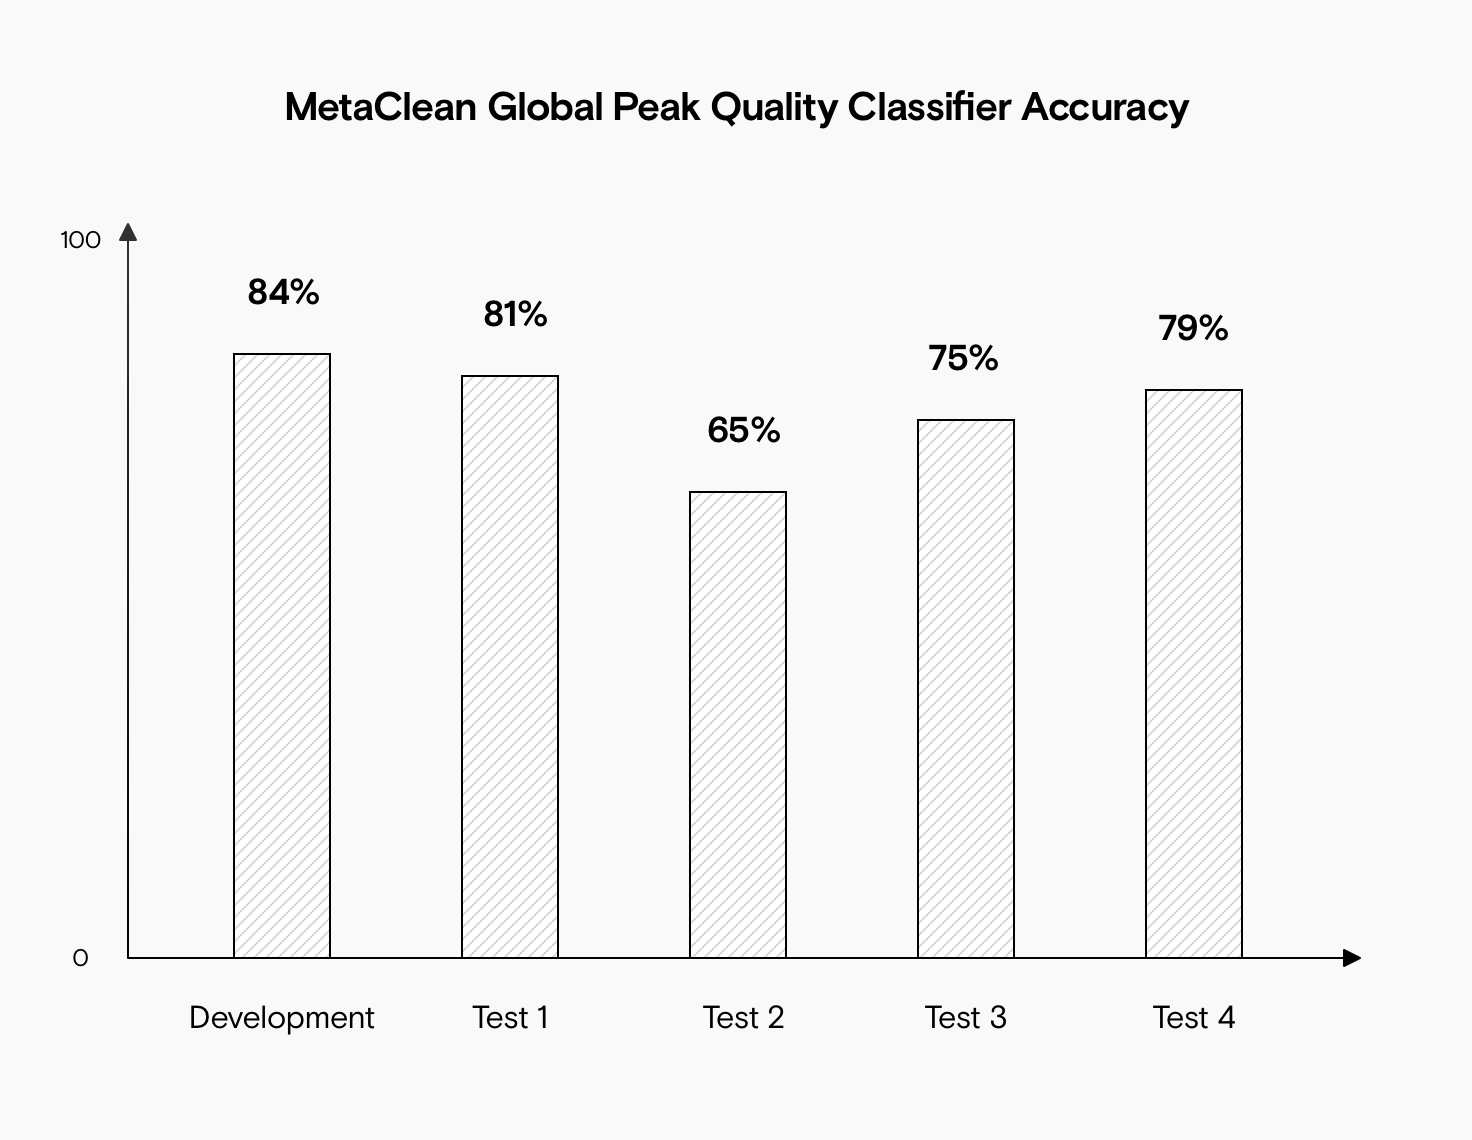 A bar chart showing that the MetaClean Global Peak Quality Classifier achieved 85% accuracy against the development dataset, 81% accuracy against a dataset with a different sample matrix (Test 1), 65% accuracy against a dataset using a different ionization mode (Test 2), 75% accuracy against data from a different instrument in positive mode (Test 3) with a different sample matrix, and 79% accuracy against data from a different instrument in negative mode (Test 4) with a different sample matrix.